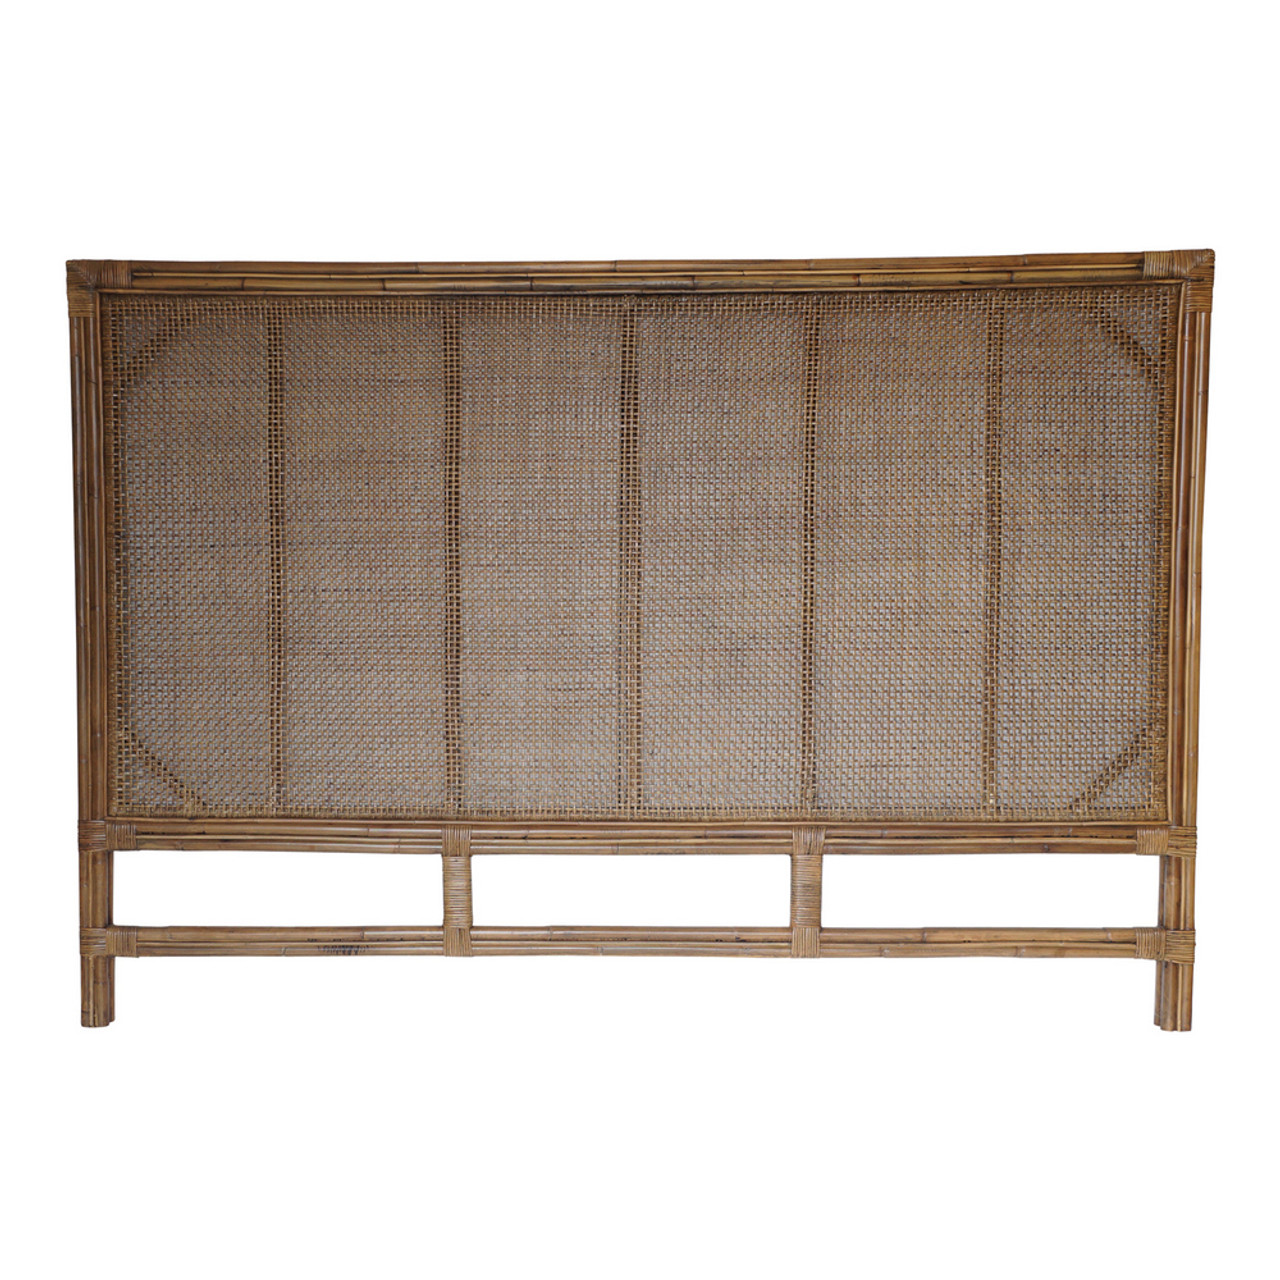 Montego Rattan Bedhead King By Maison Living Maison Living